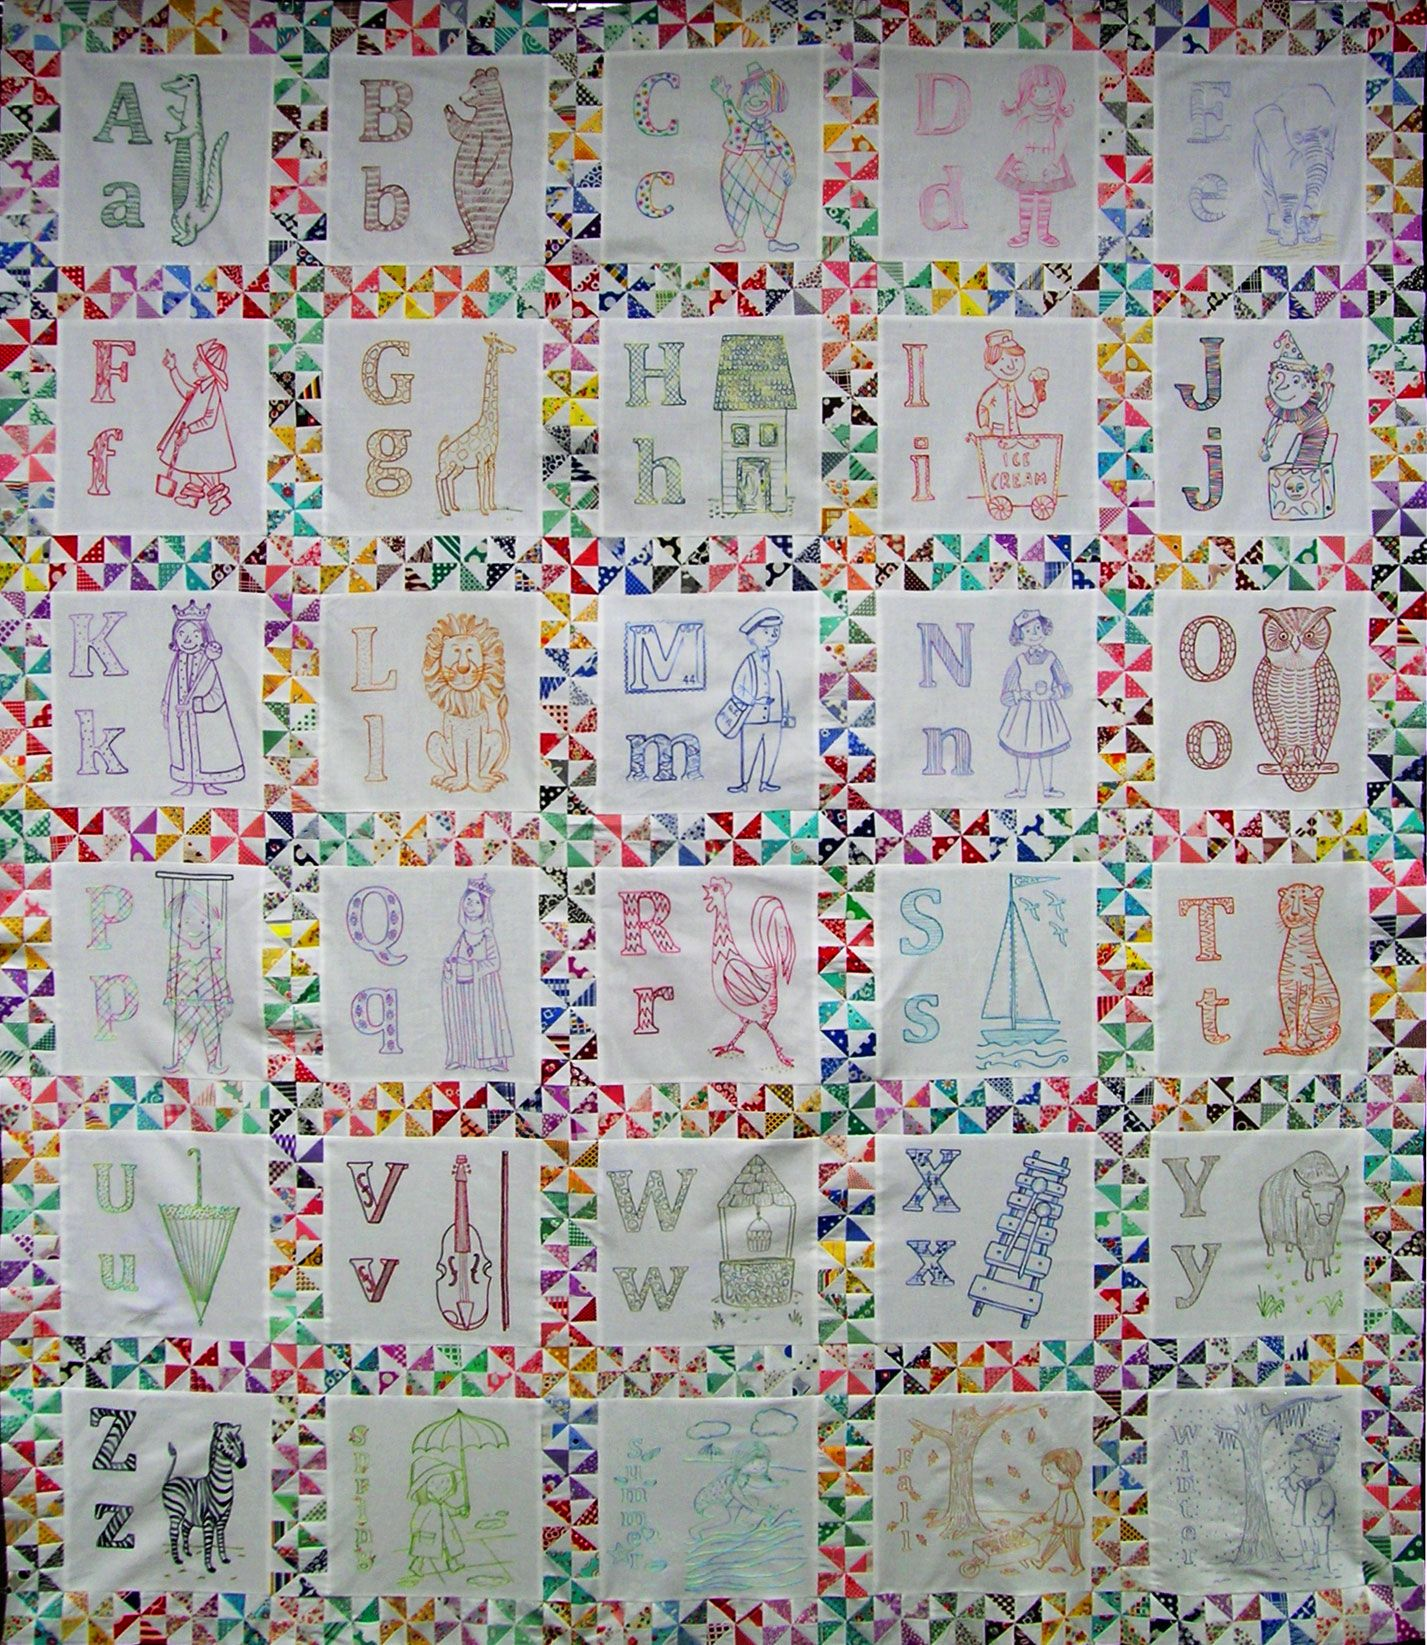 Alphabet Quilt .. with links to patterns for each letter's block ... : quilt embroidery patterns - Adamdwight.com